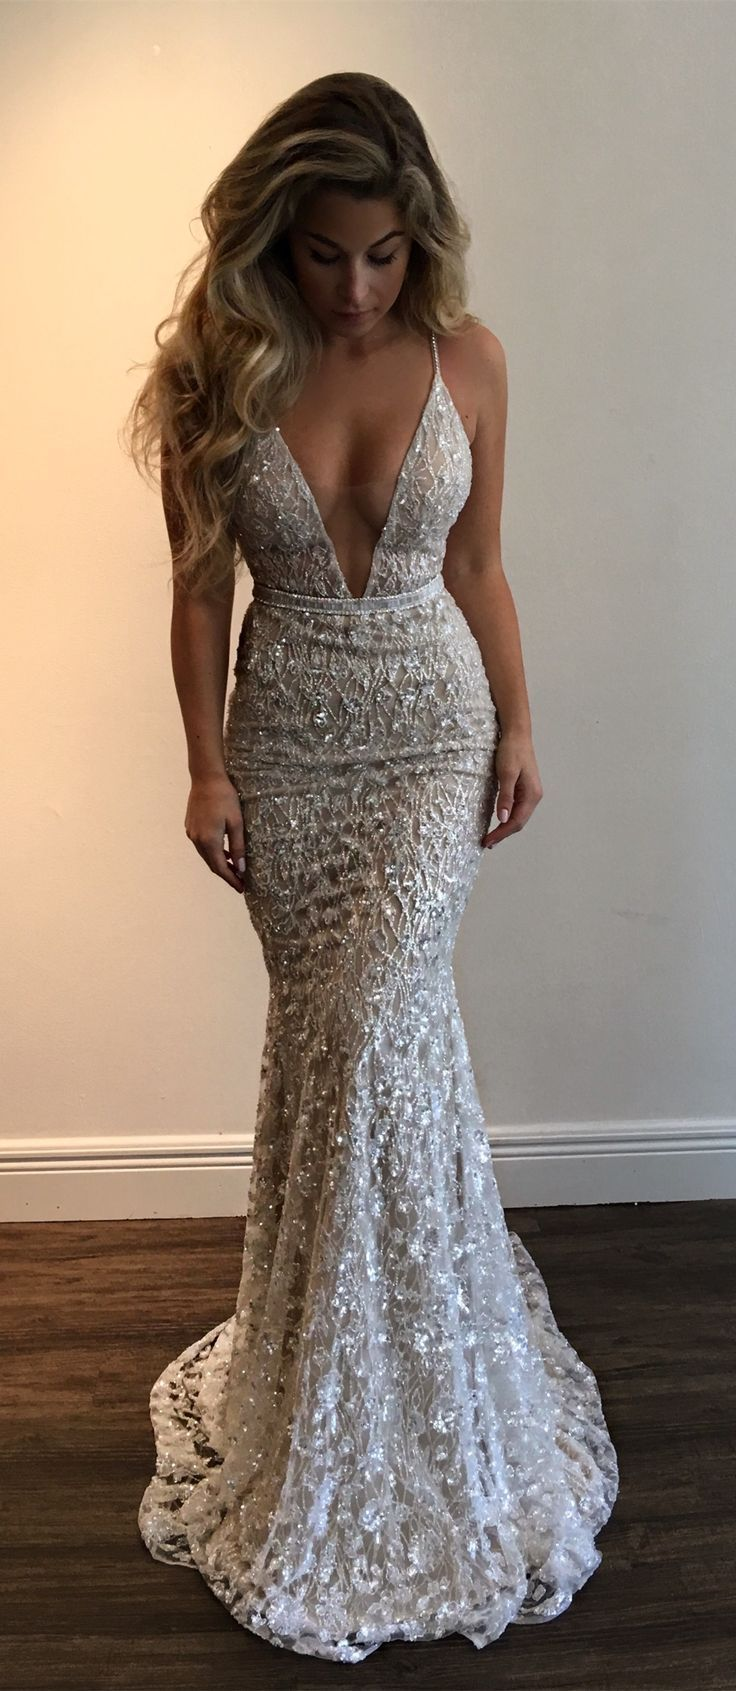 15aaa85c88e1 Mermaid Deep V-Neck Sweep Train Silver Lace Prom Dress with Sequins -  Jessica Valdez